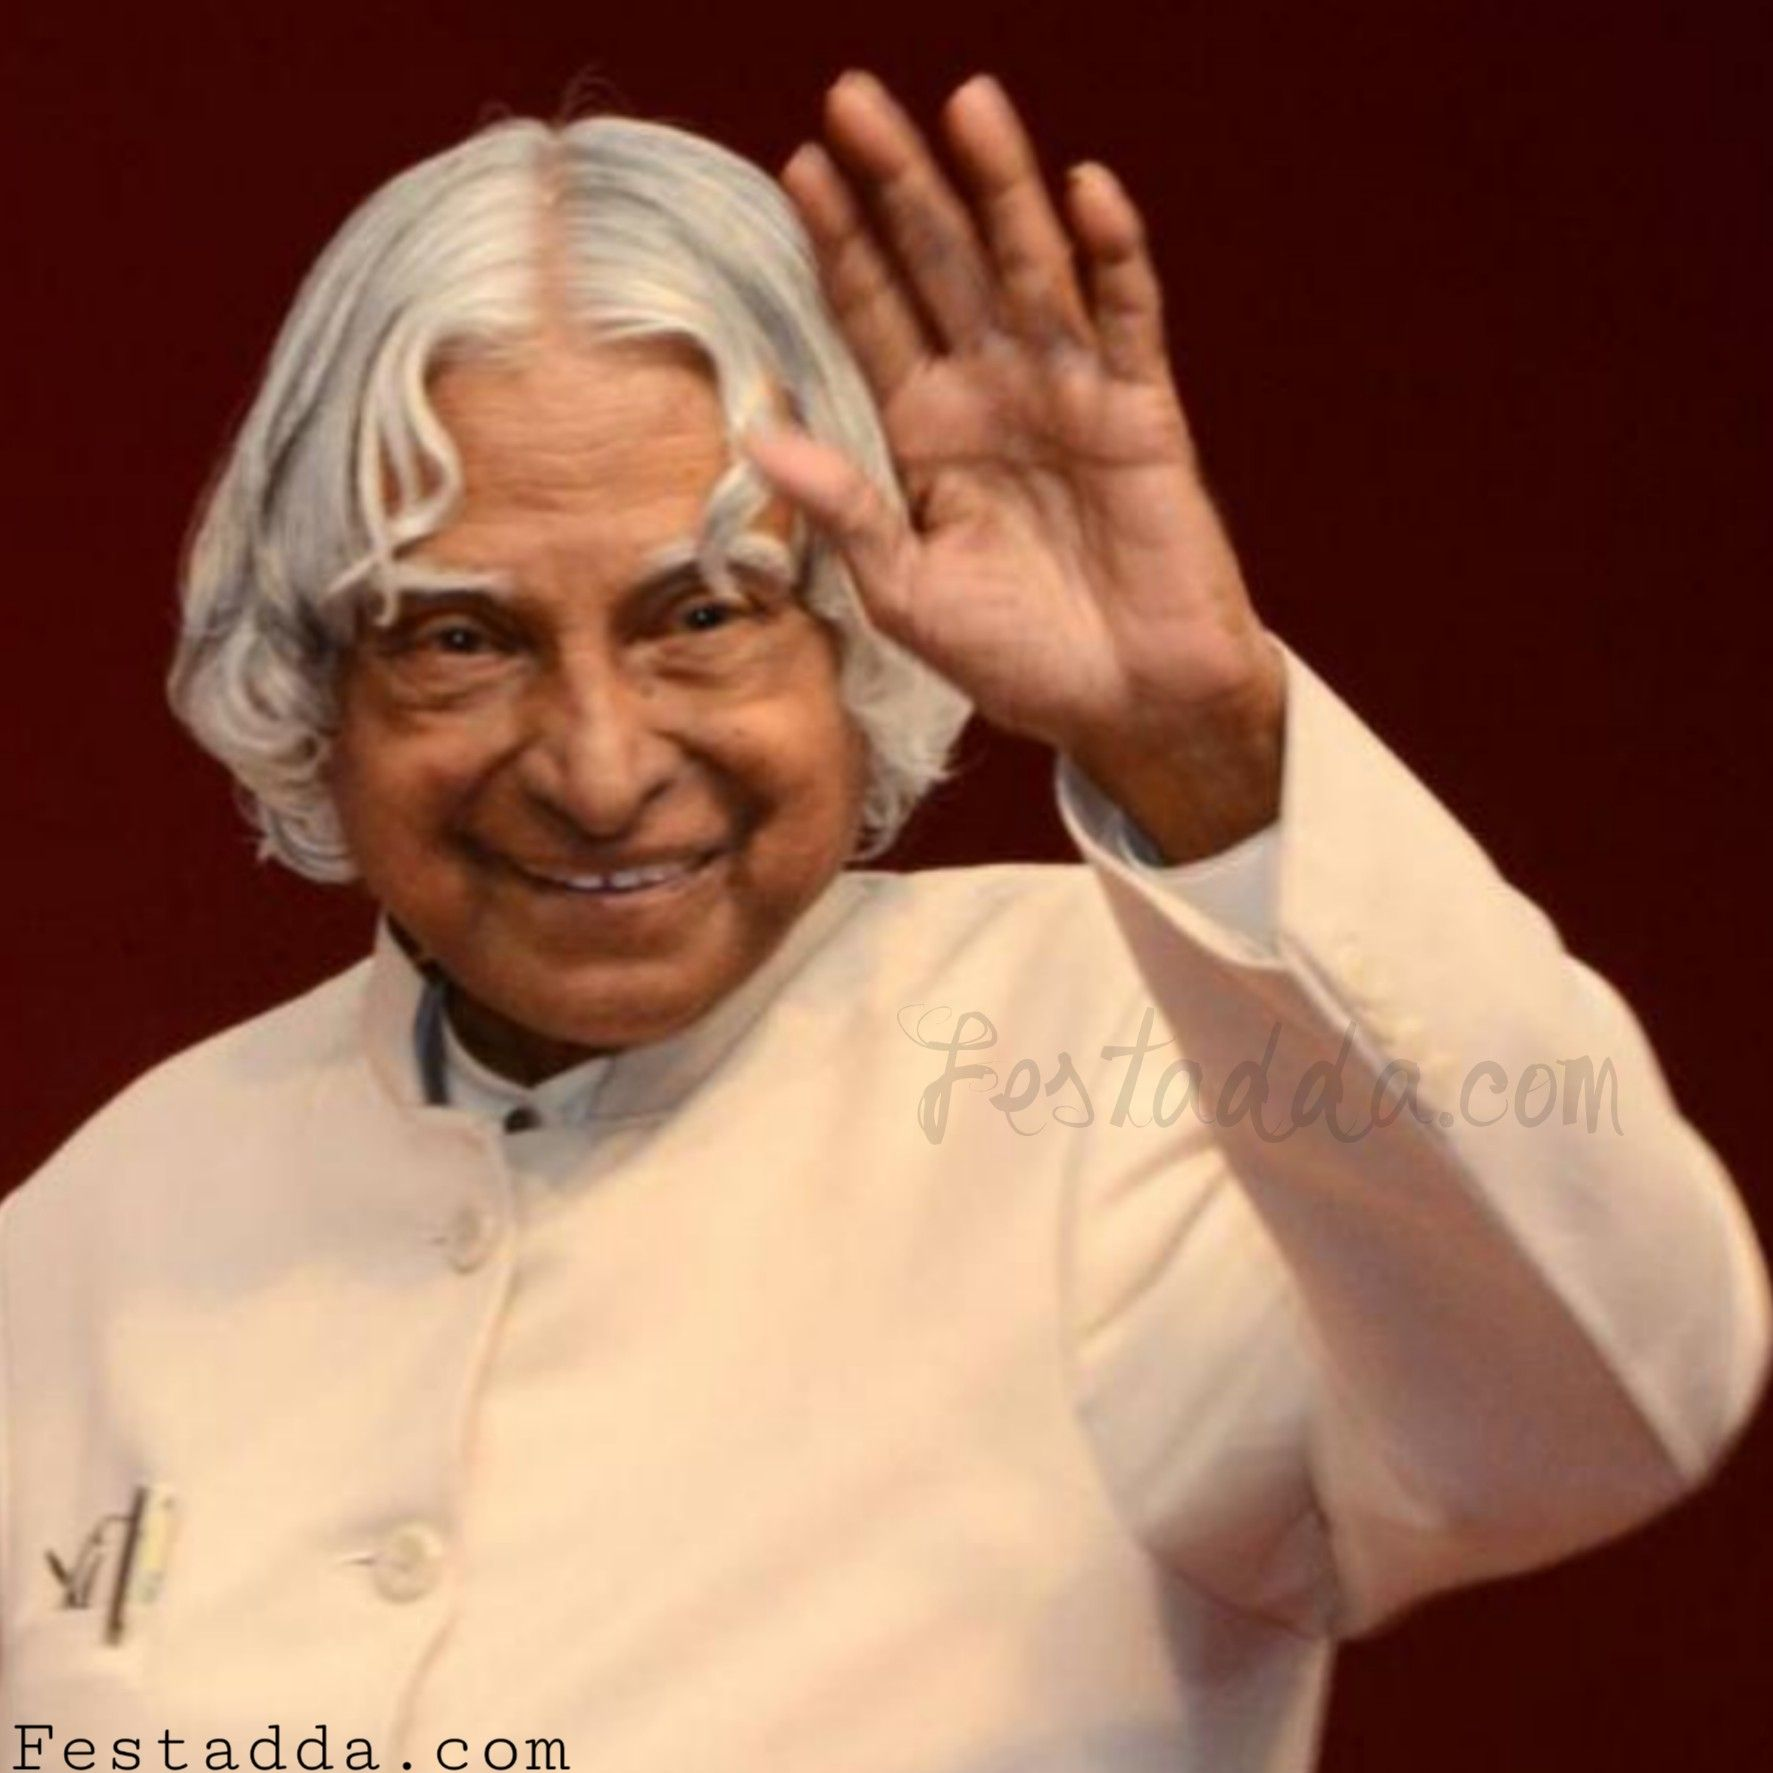 Abdul Kalam Images With Words Abdul kalam, Mom and dad